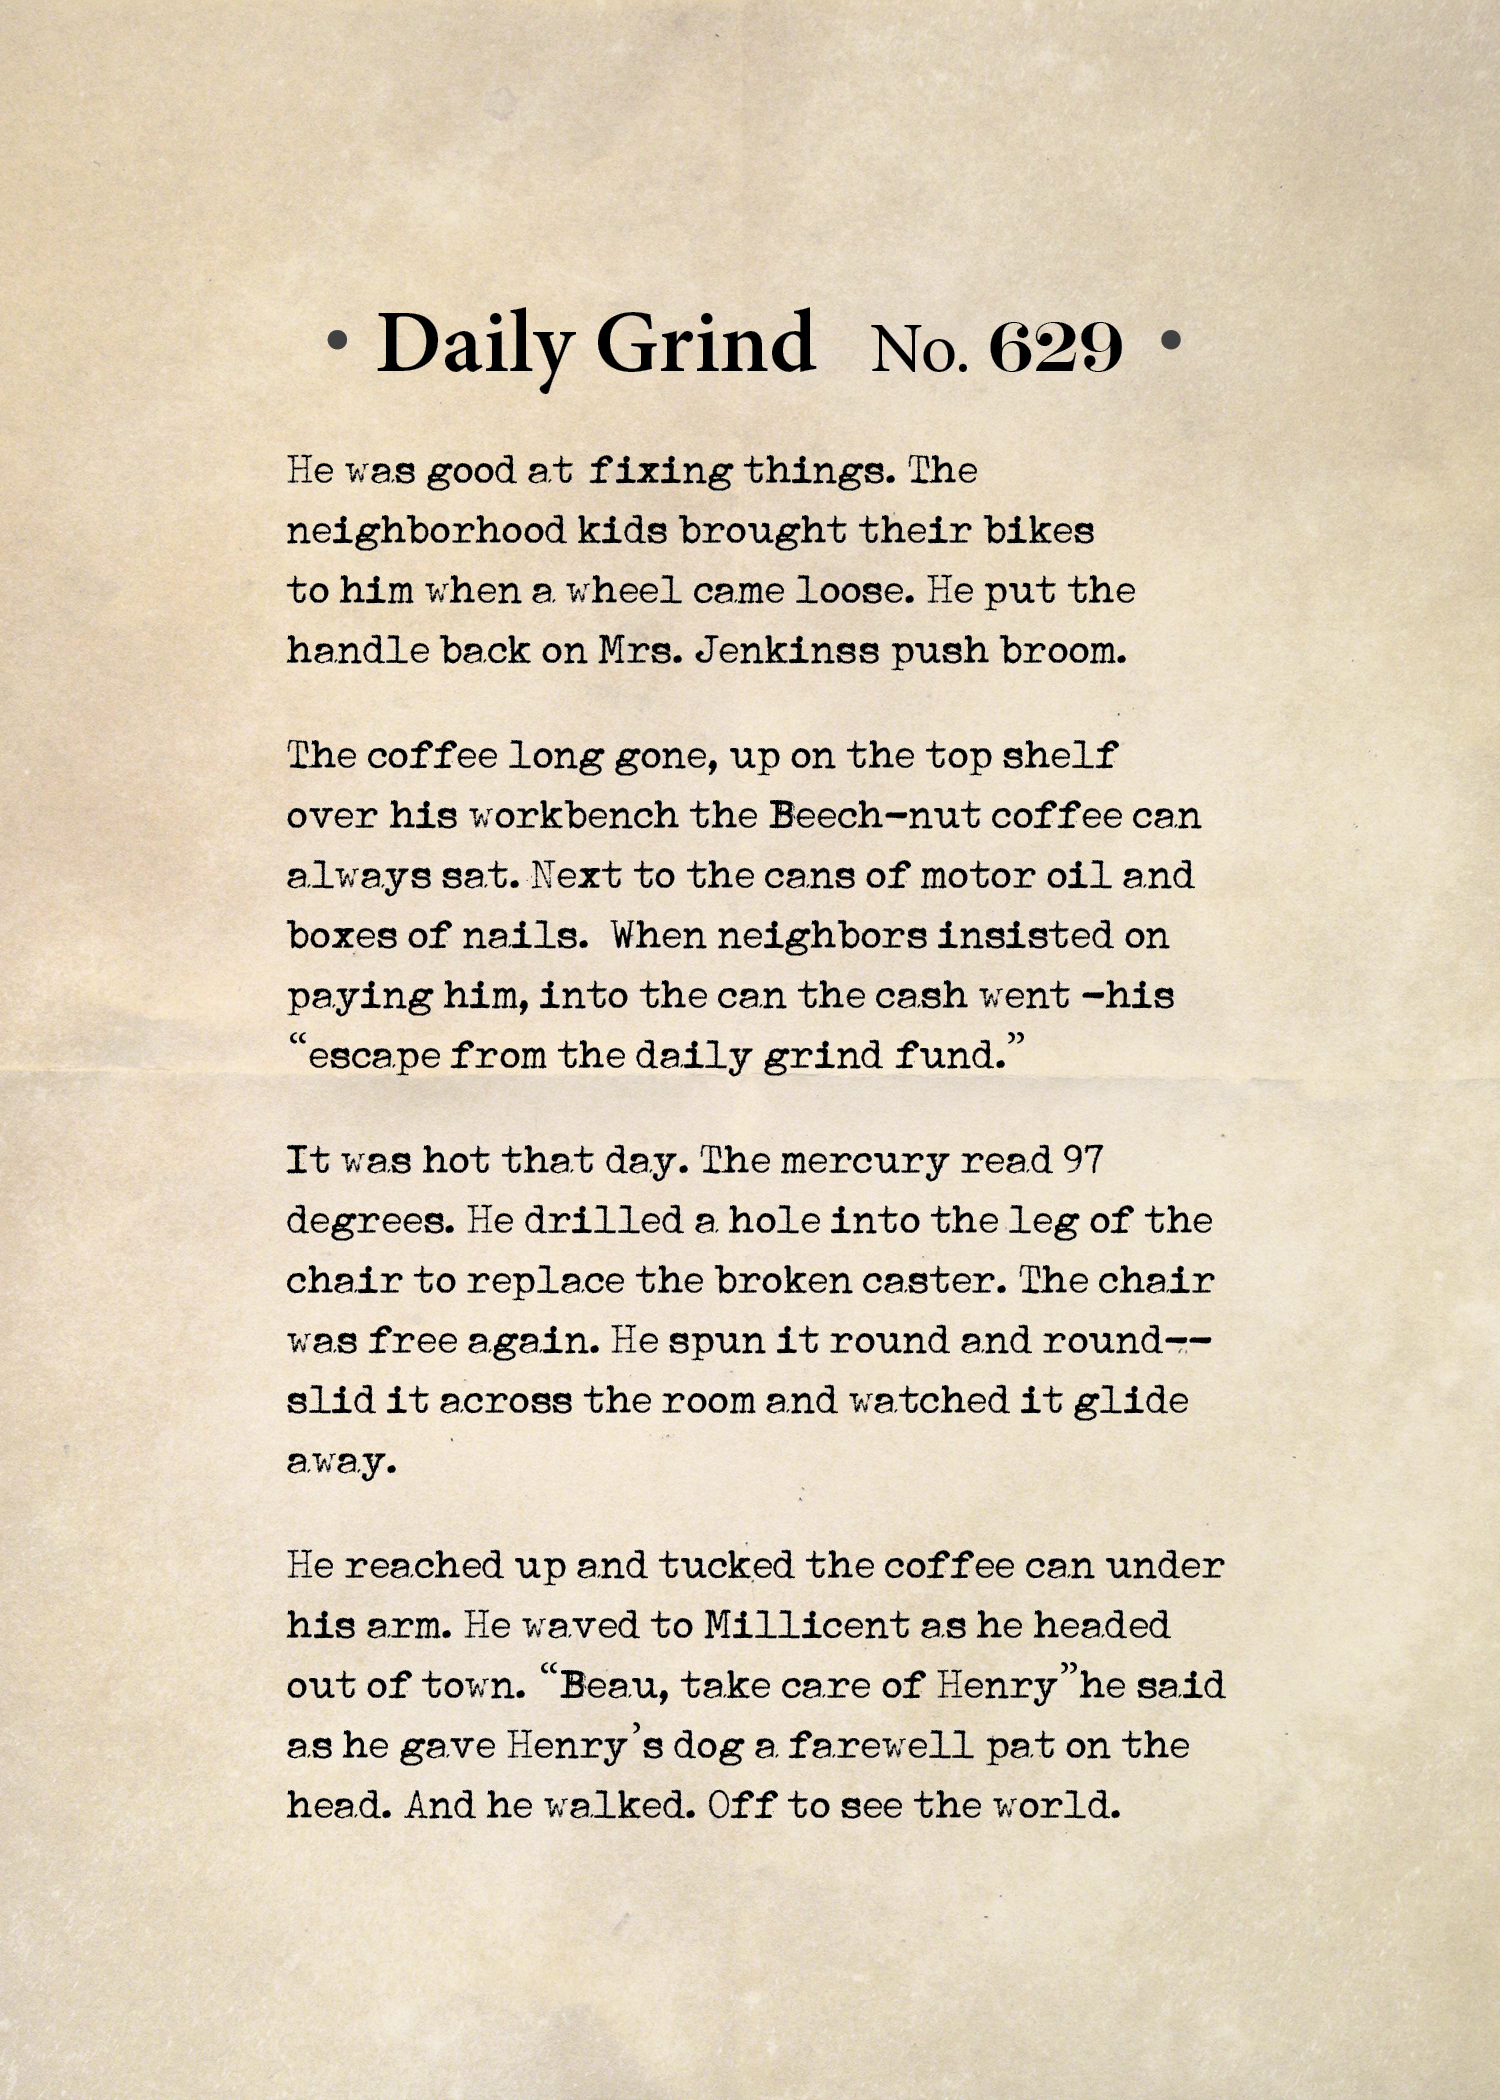 Daily Grind No. 629